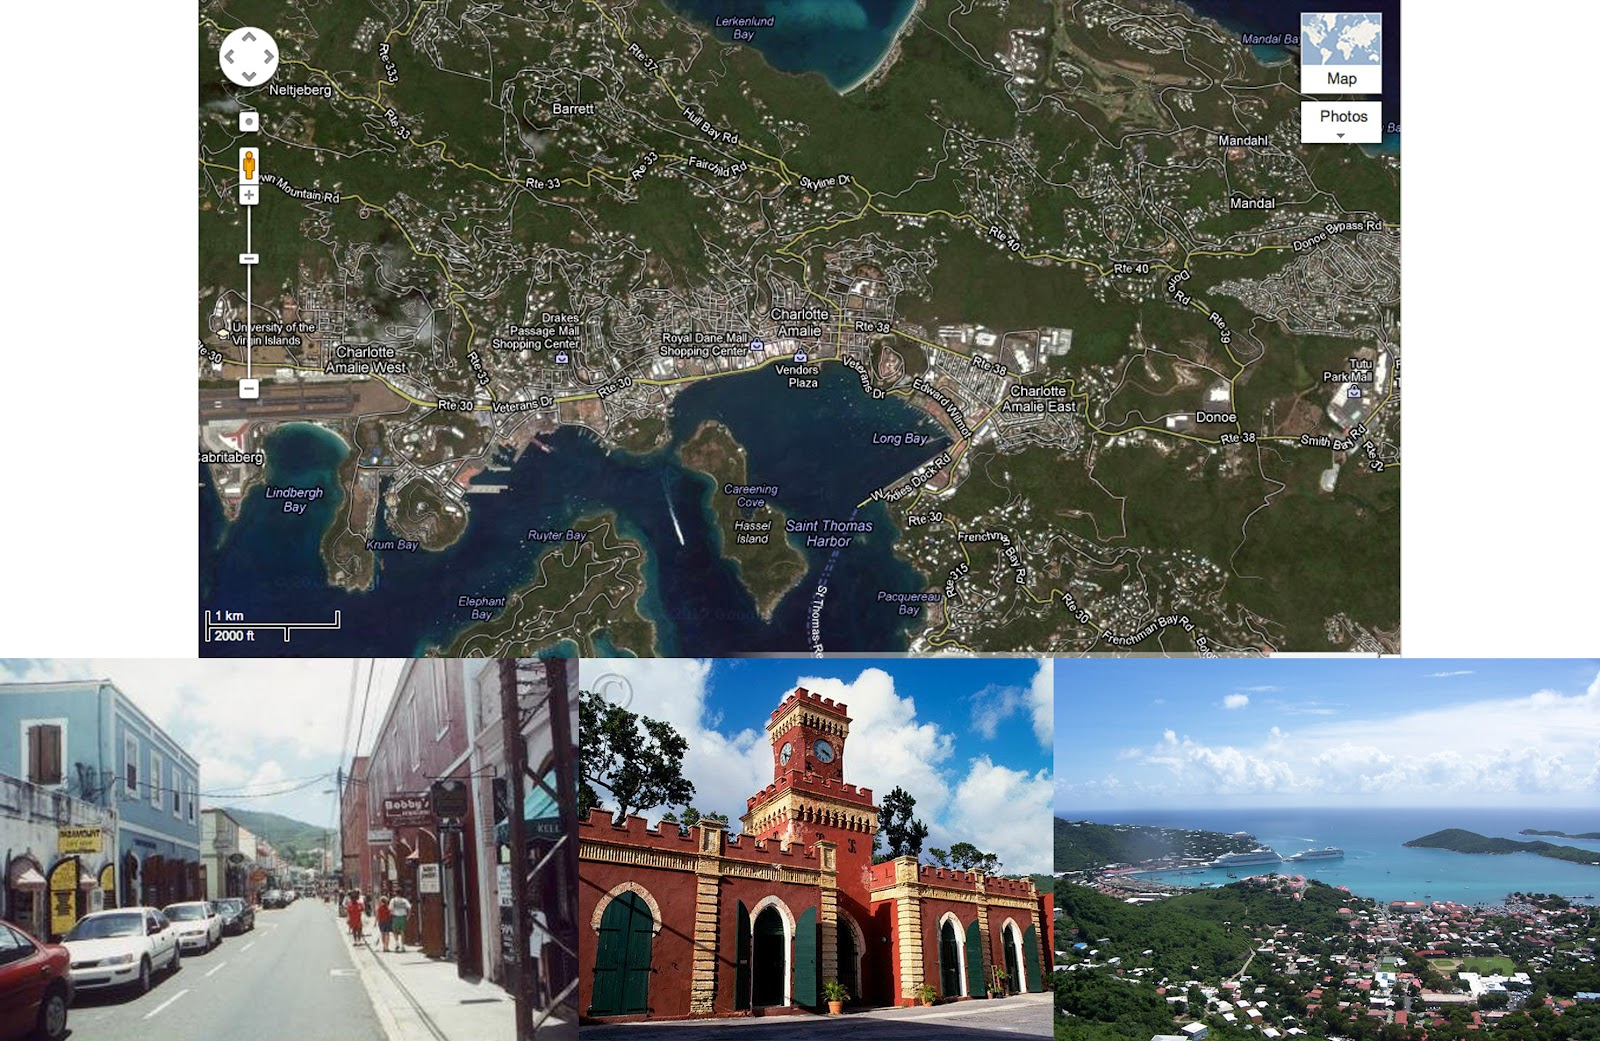 our group has chosen charlotte amalie of the u s virgin island of st thomas for the city exhibition initial research shows that it was originally settled